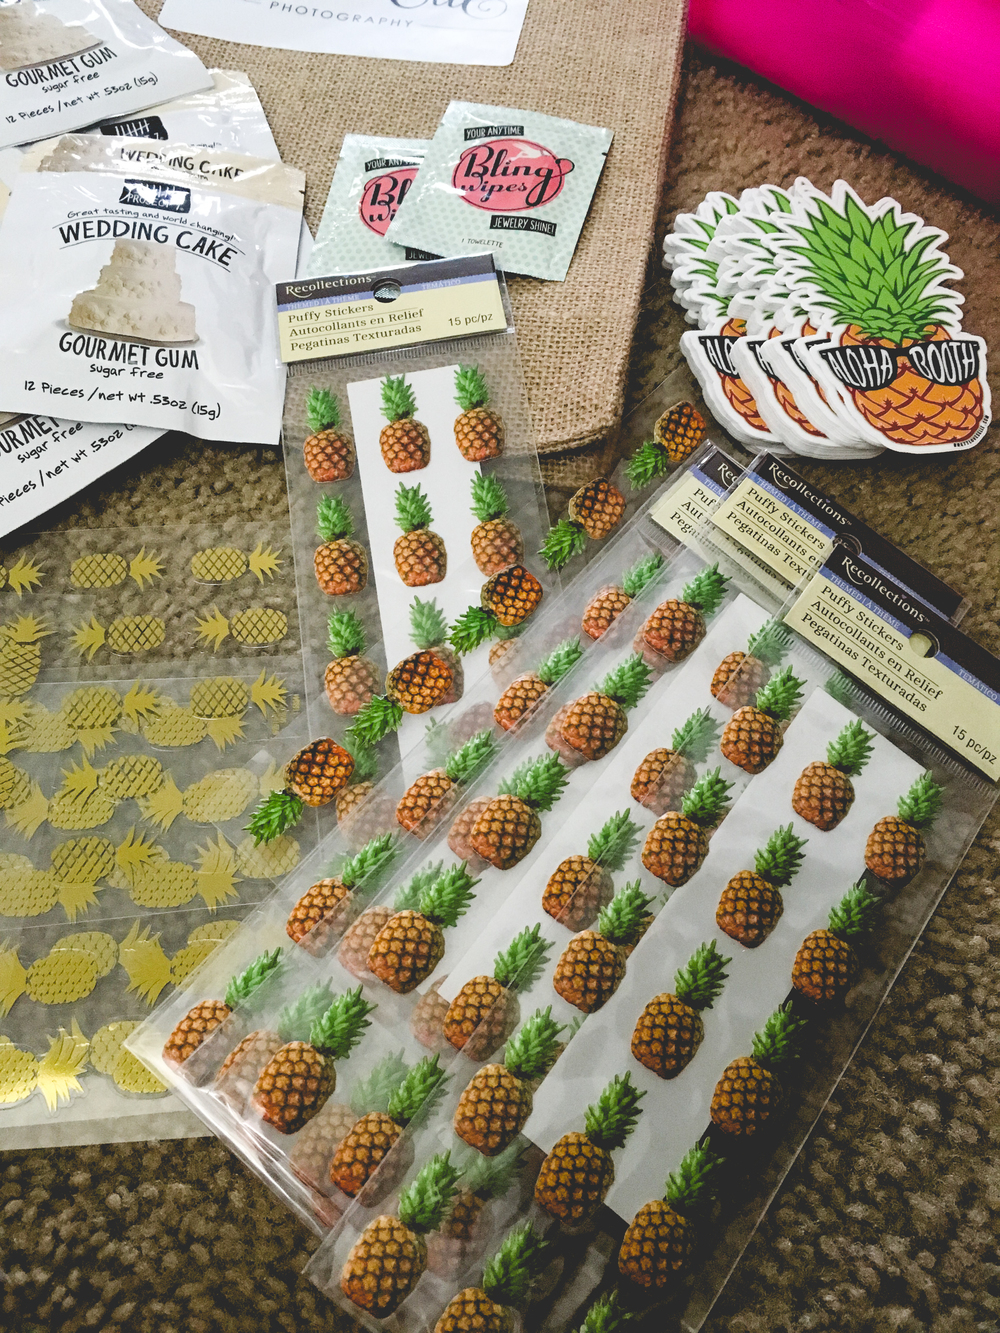 Pineapple stickers!!! ---  THIS PROJECT 7 GUM IS THE BOMB!! I BUY ALL DIFFERENT KINDS OF FLAVORS FOR MYSELF. MY LITTLE SISTER EVEN MAKES ME SEND HER SOME...SHE COULD LITERALLY GET IT FROM TARGET BUT SHE LIKES WHEN I SEND IT TO HER.